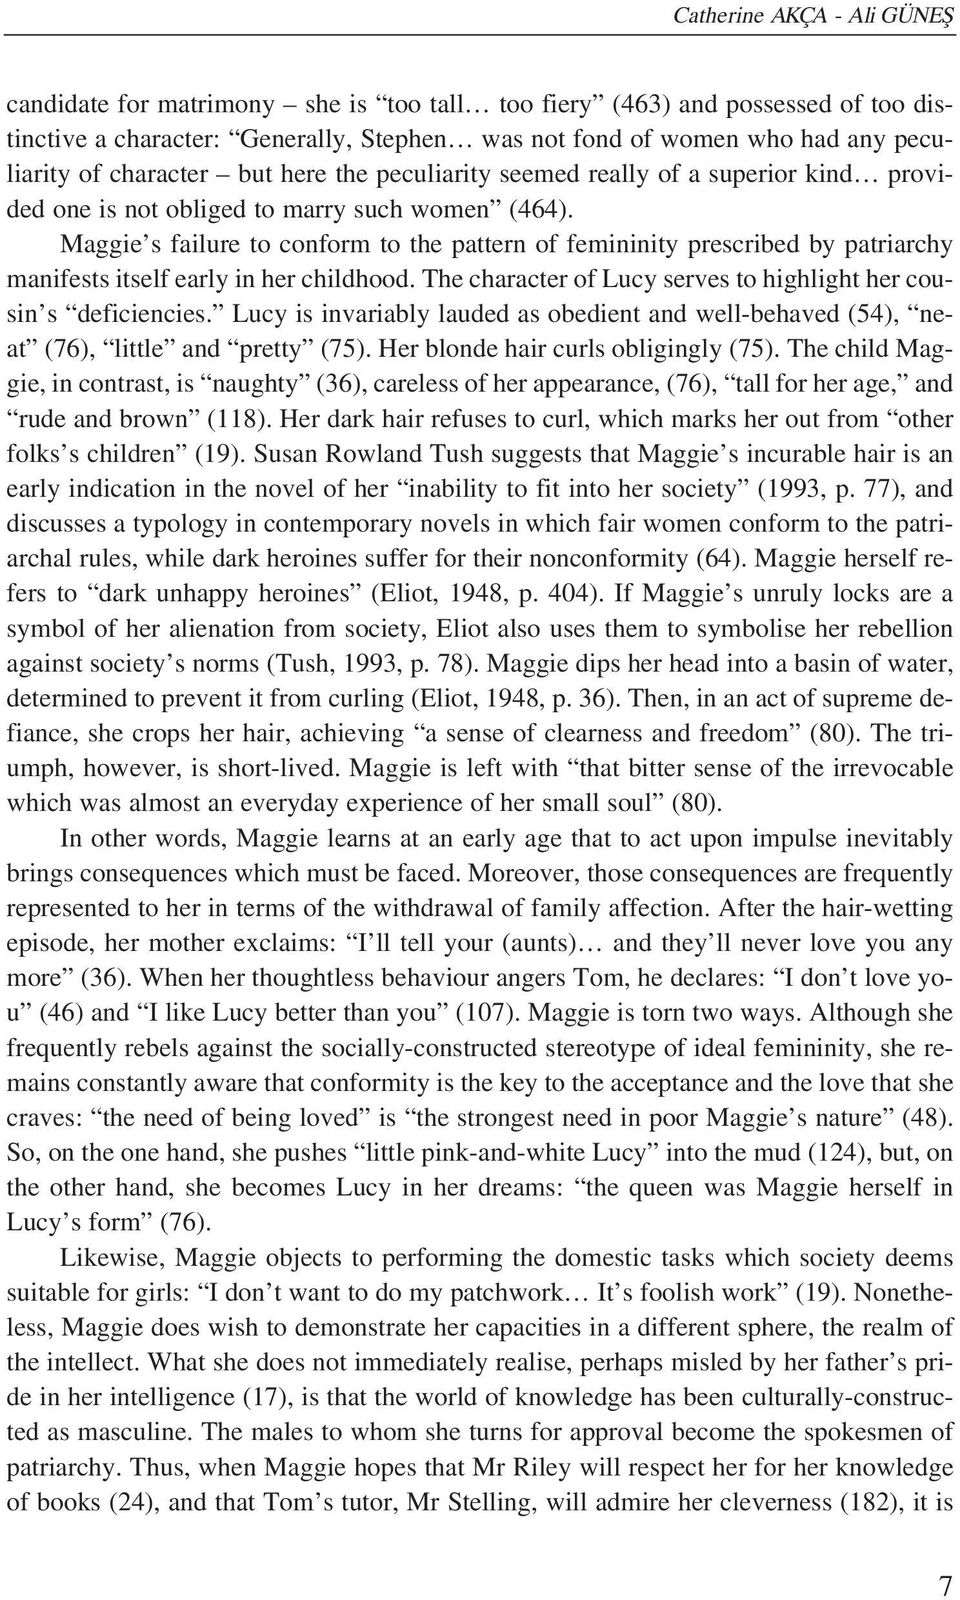 Maggie s failure to conform to the pattern of femininity prescribed by patriarchy manifests itself early in her childhood. The character of Lucy serves to highlight her cousin s deficiencies.